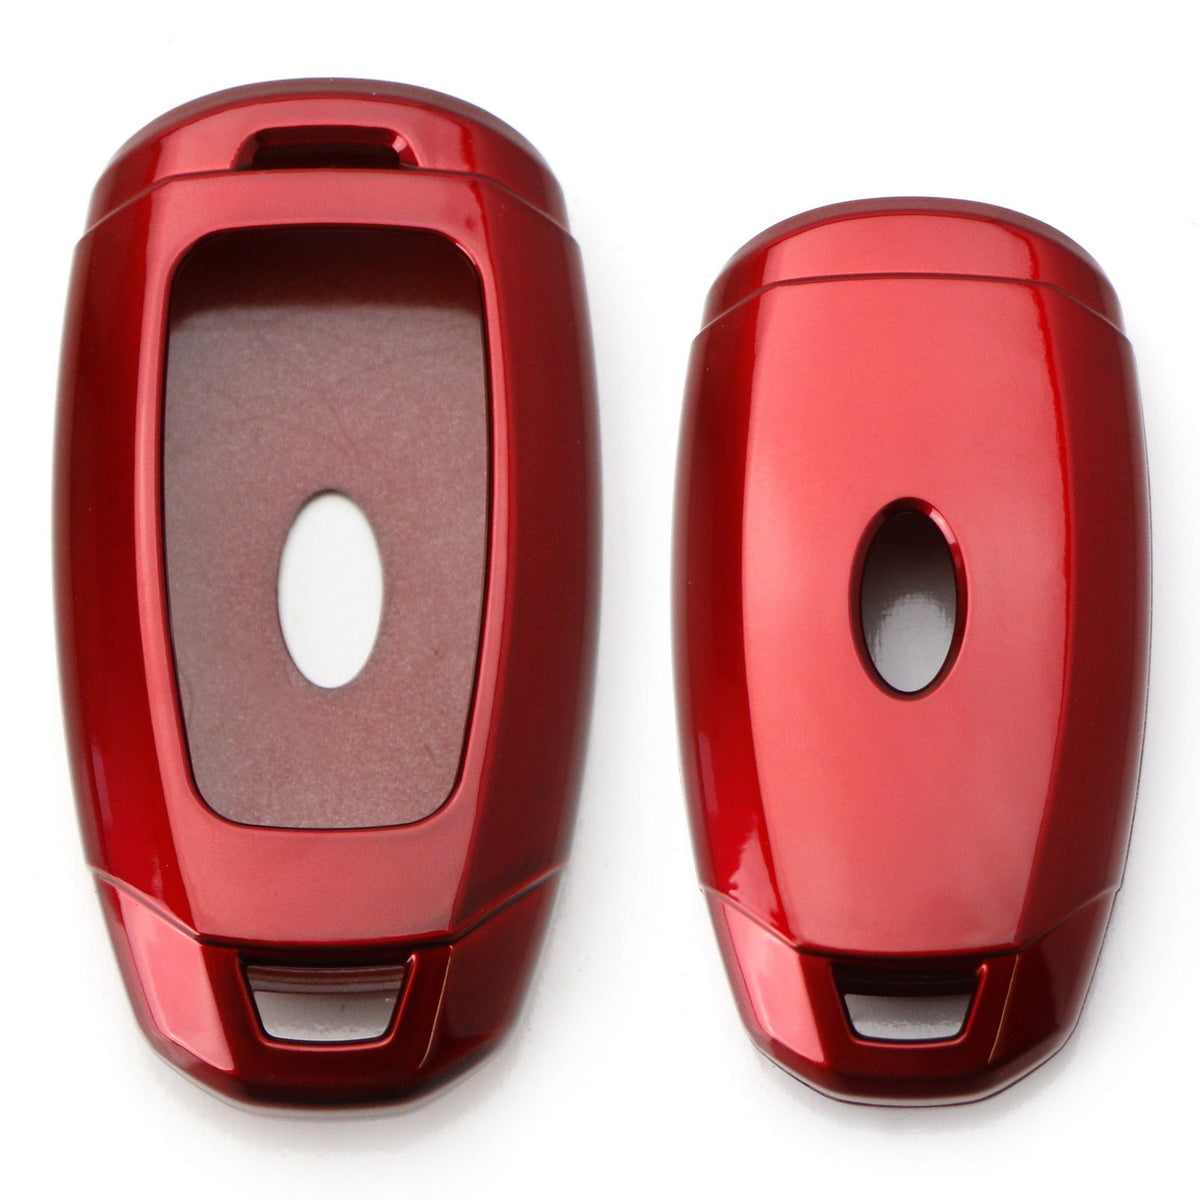 SEGADEN Paint Metallic Color Shell Cover Hard Case Holder Compatible with HYUNDAI Santa Fe ix45 Smart Remote Key Fob 3 Button SV0104 Red